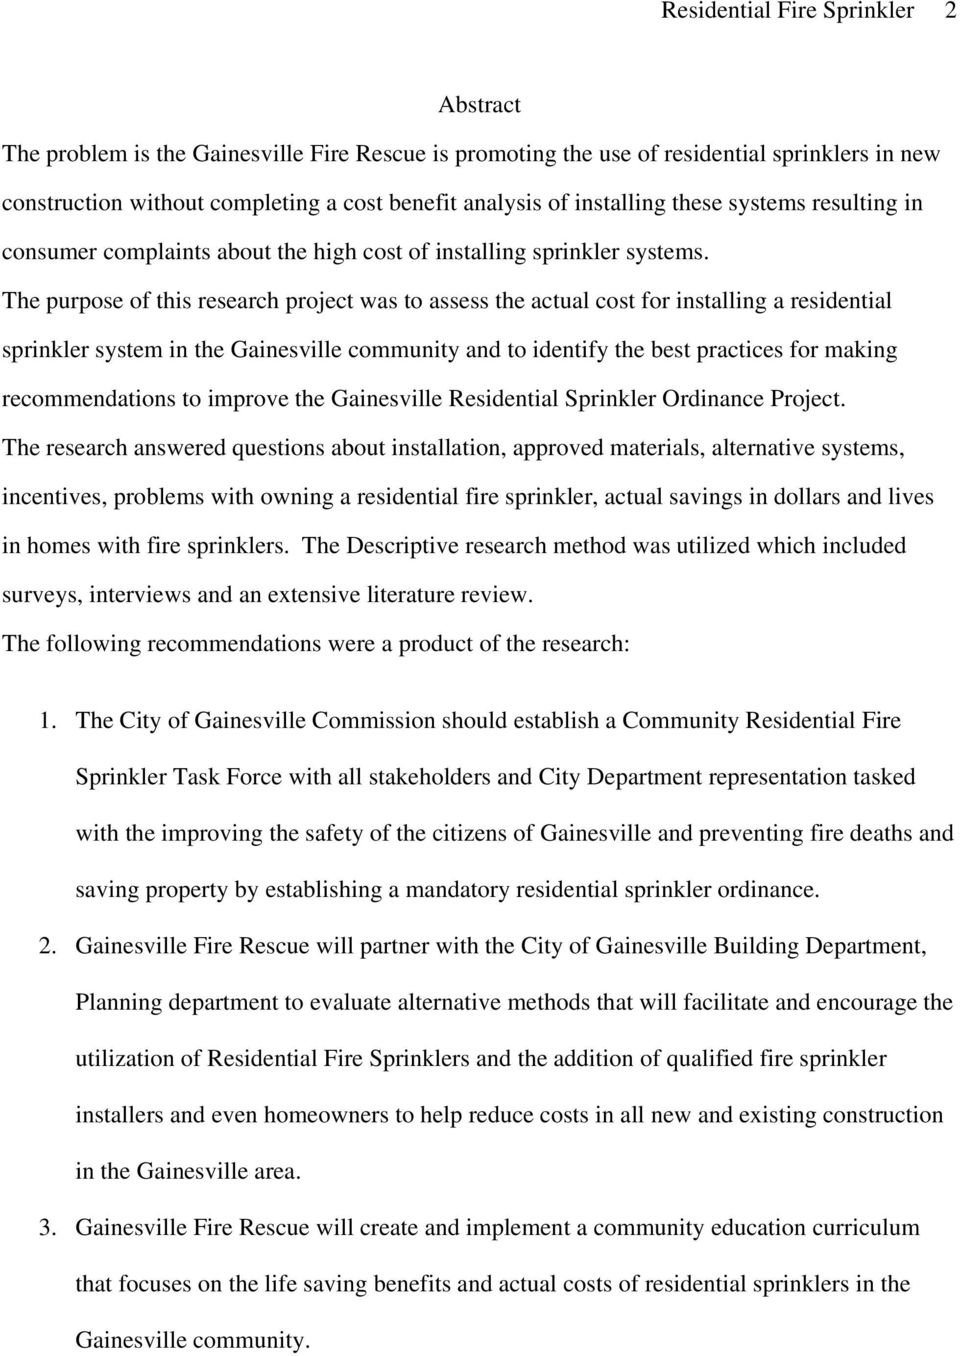 The purpose of this research project was to assess the actual cost for installing a residential sprinkler system in the Gainesville community and to identify the best practices for making